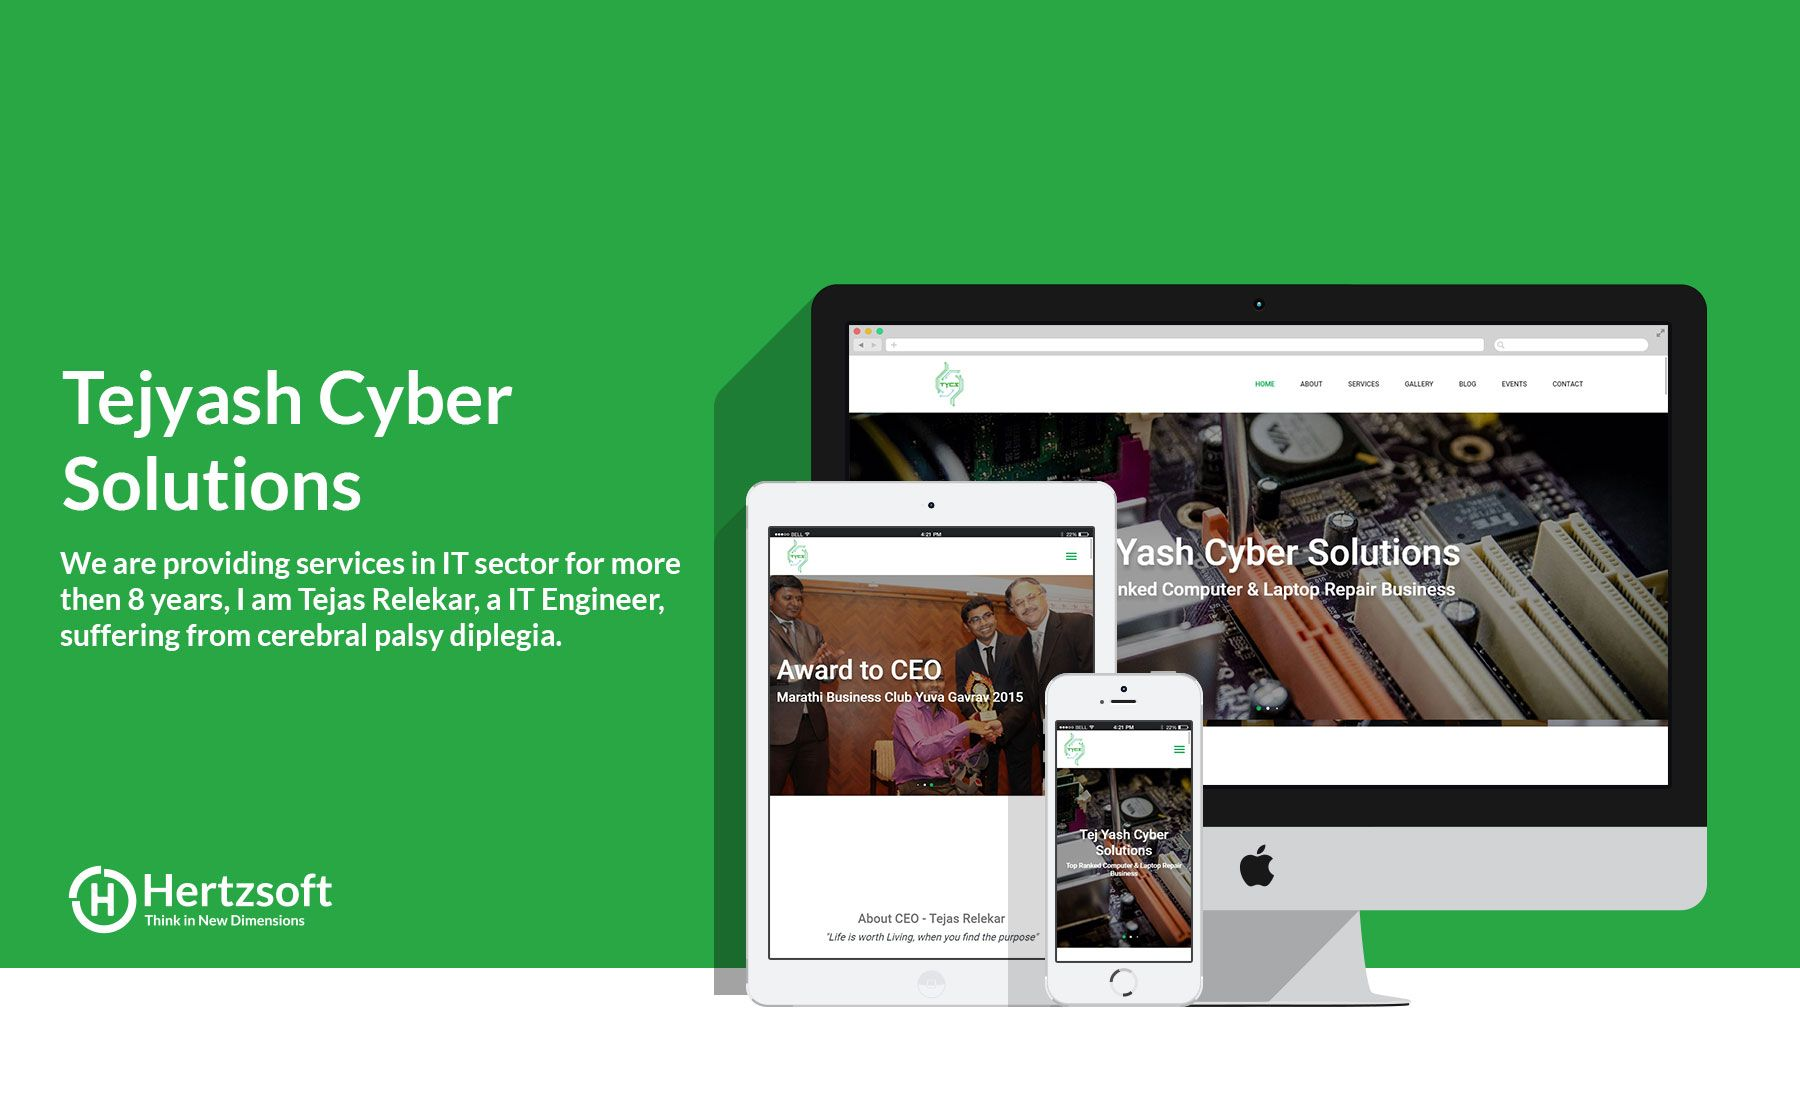 Tejyash Cyber Solutions